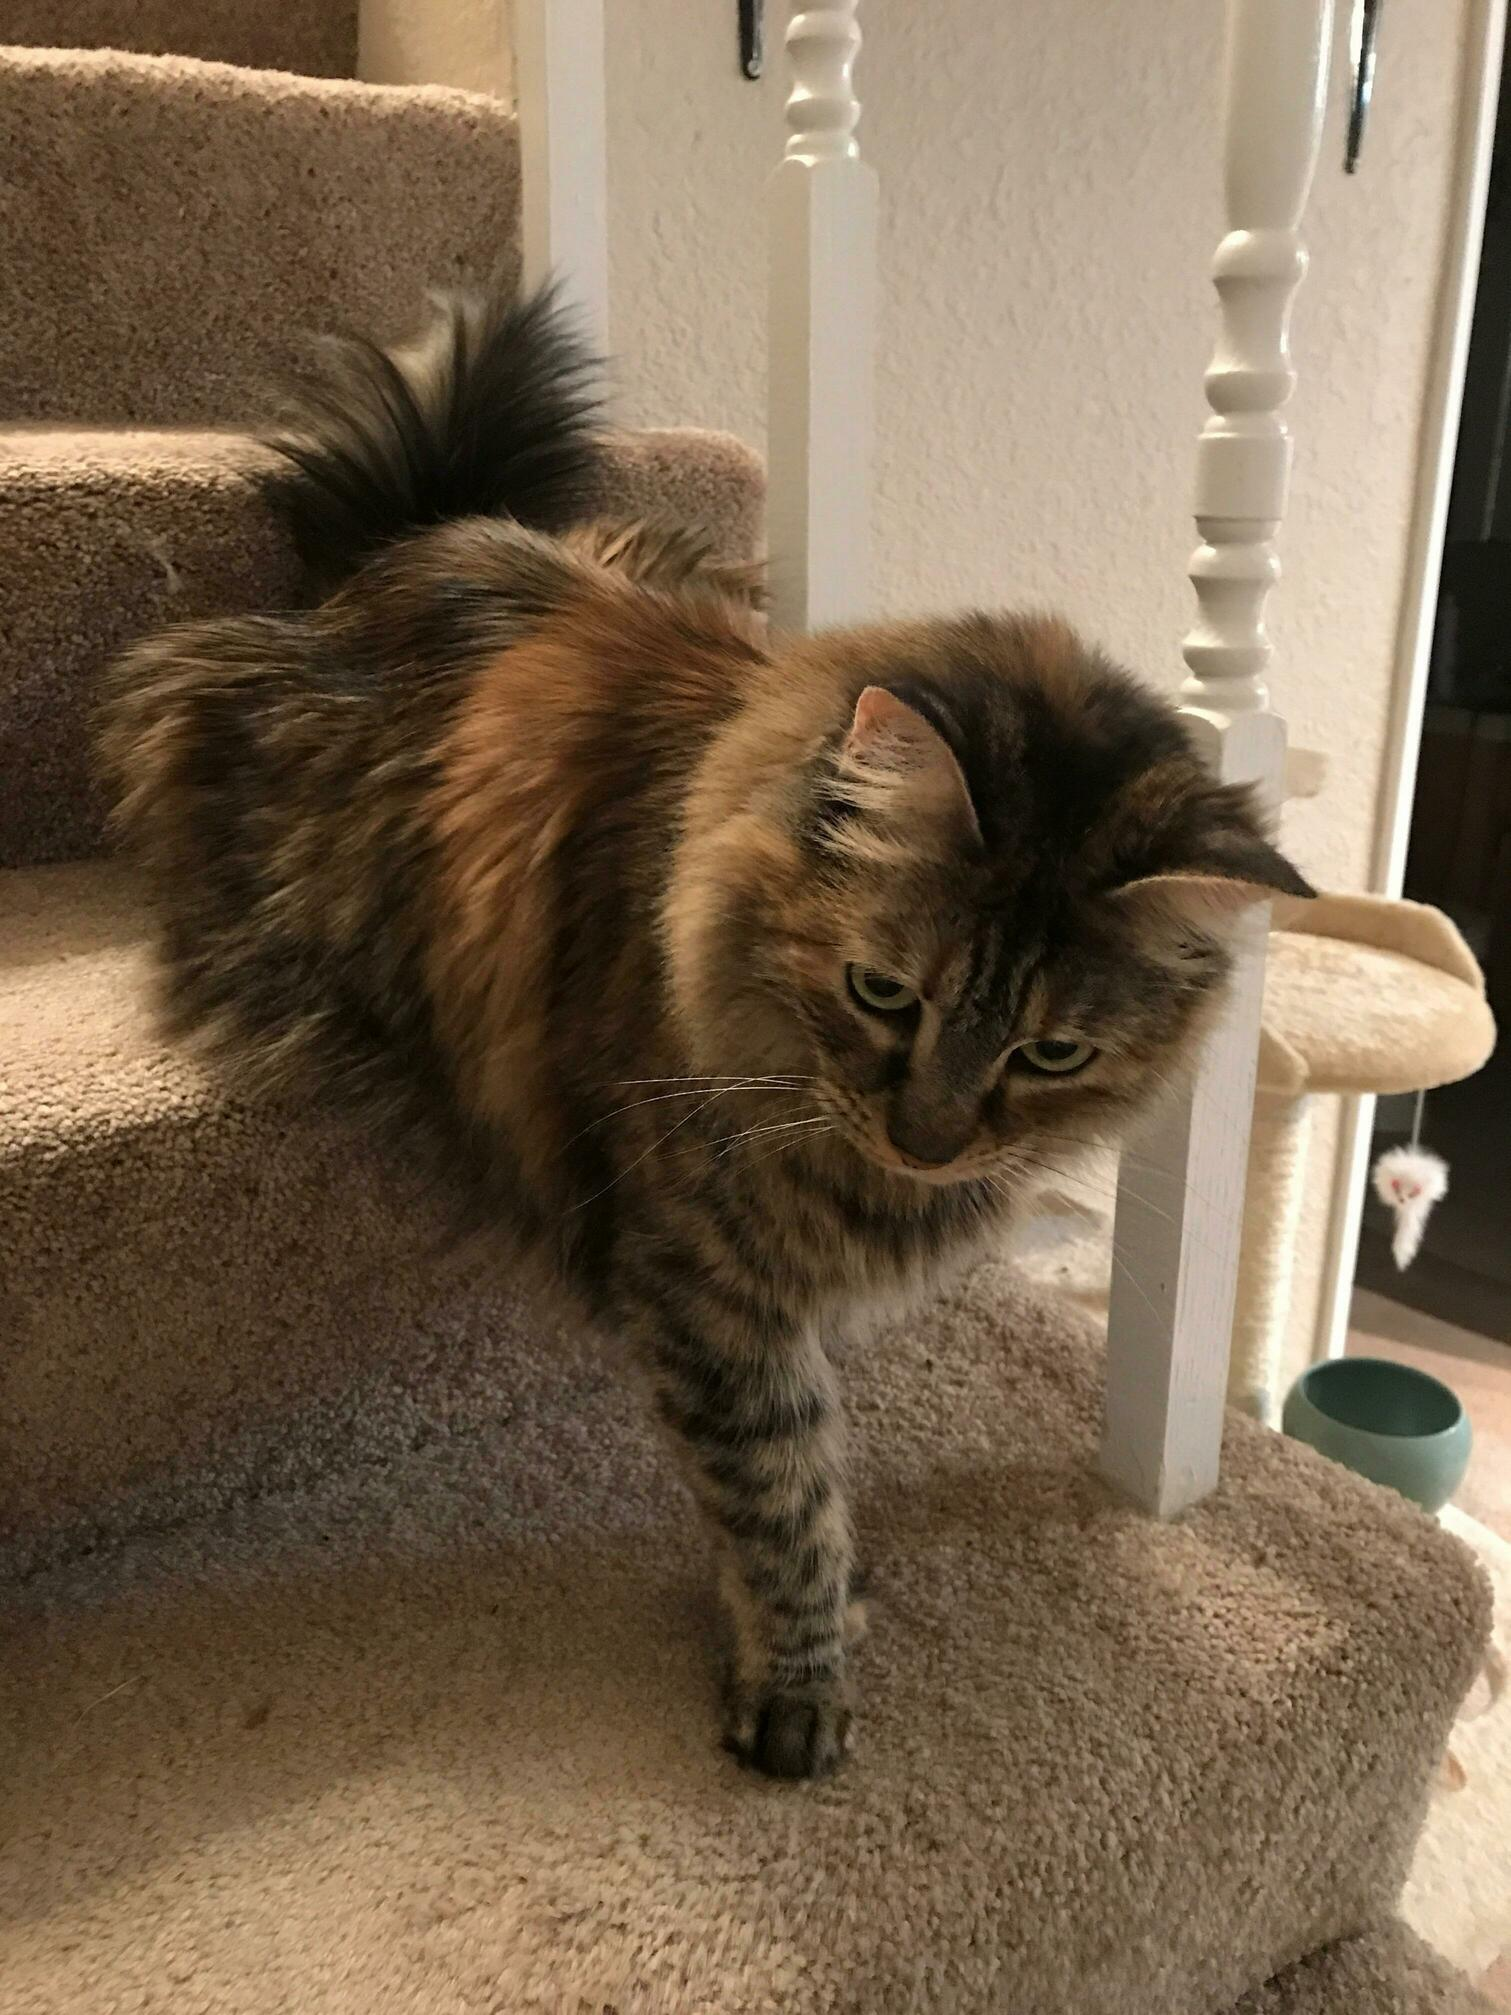 This is how my cat sits on the stairs.